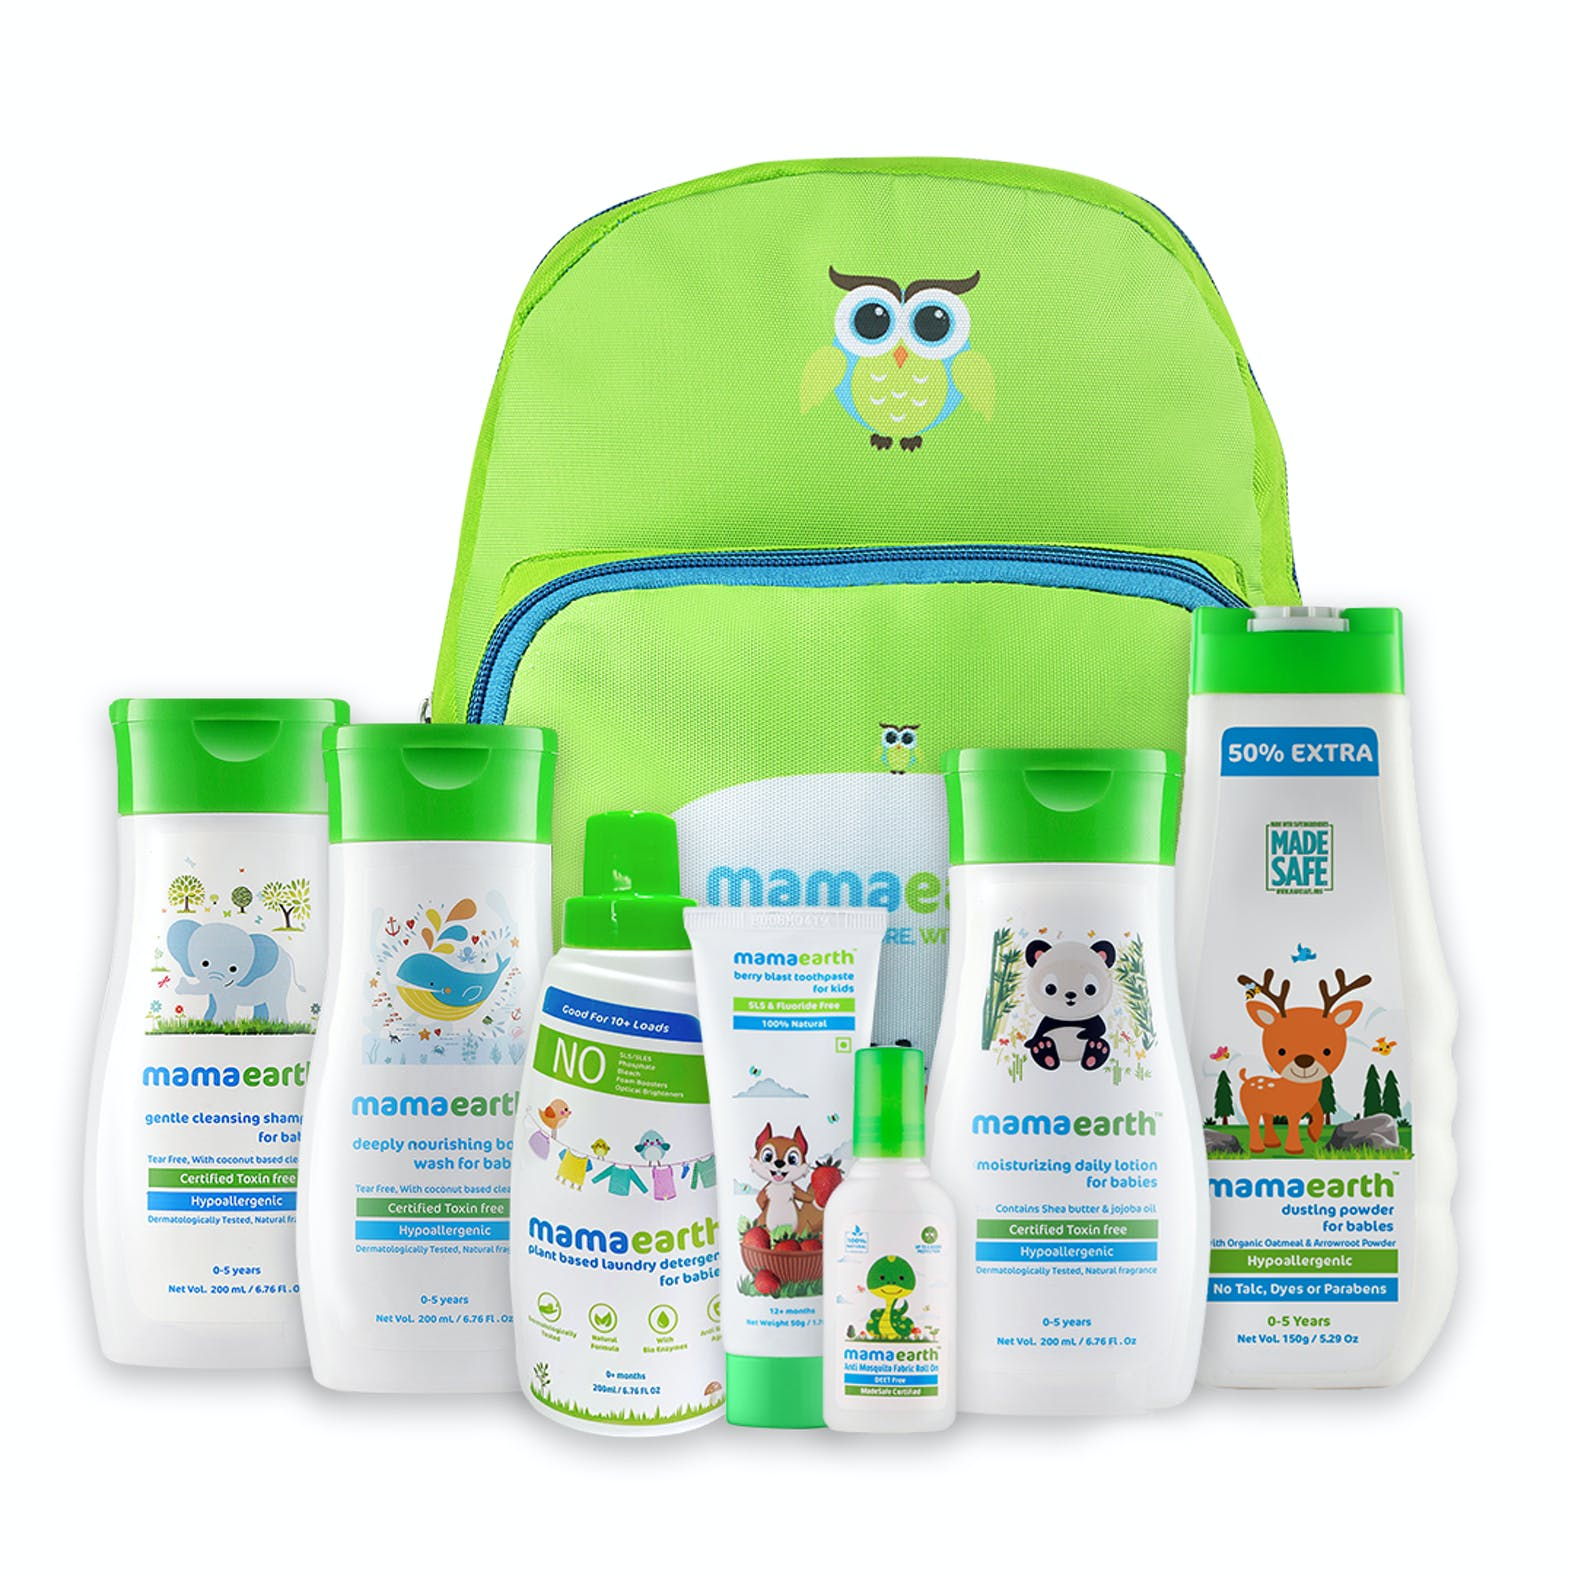 mamaearth baby products